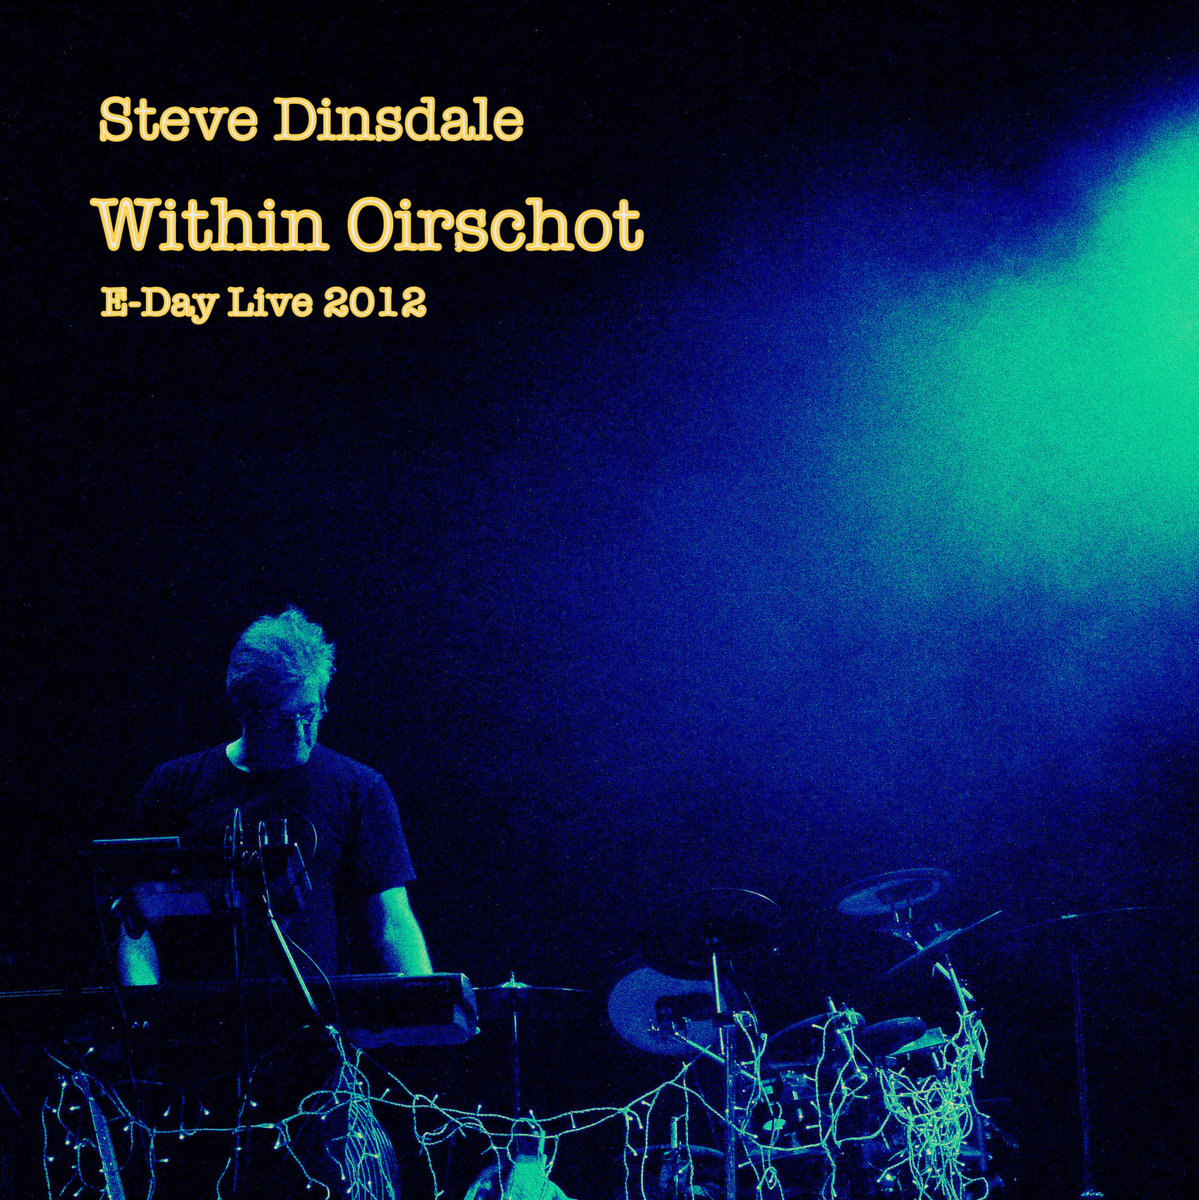 steve dinsdale: within oirschot